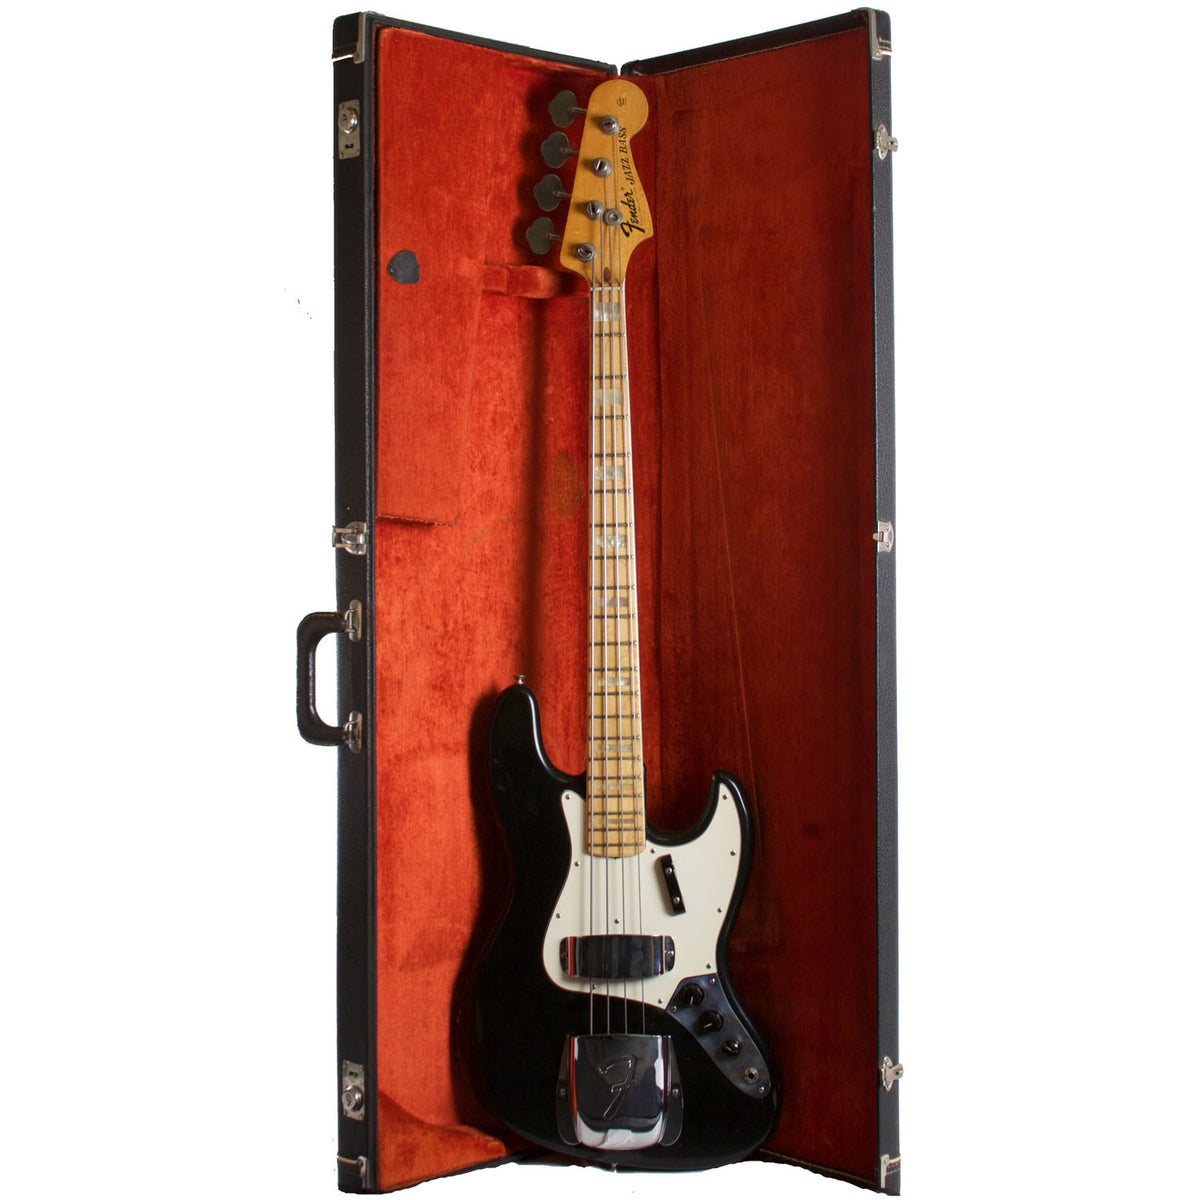 1973 Fender Jazz Bass - Garrett Park Guitars  - 9